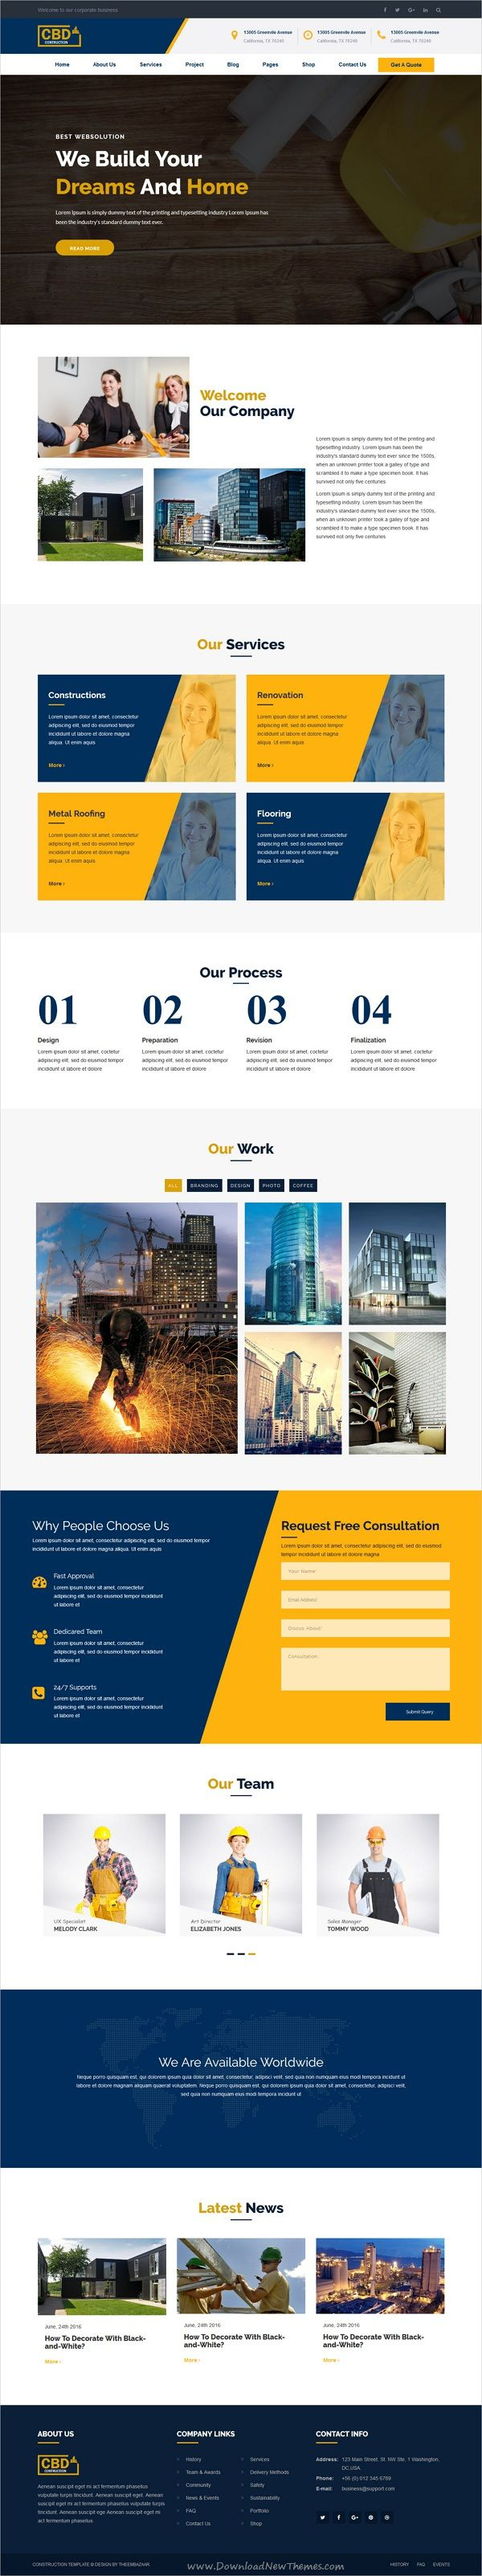 Construct is clean and modern design 5in1 responsive #HTML5 template for #construction and #architecture company website download now..